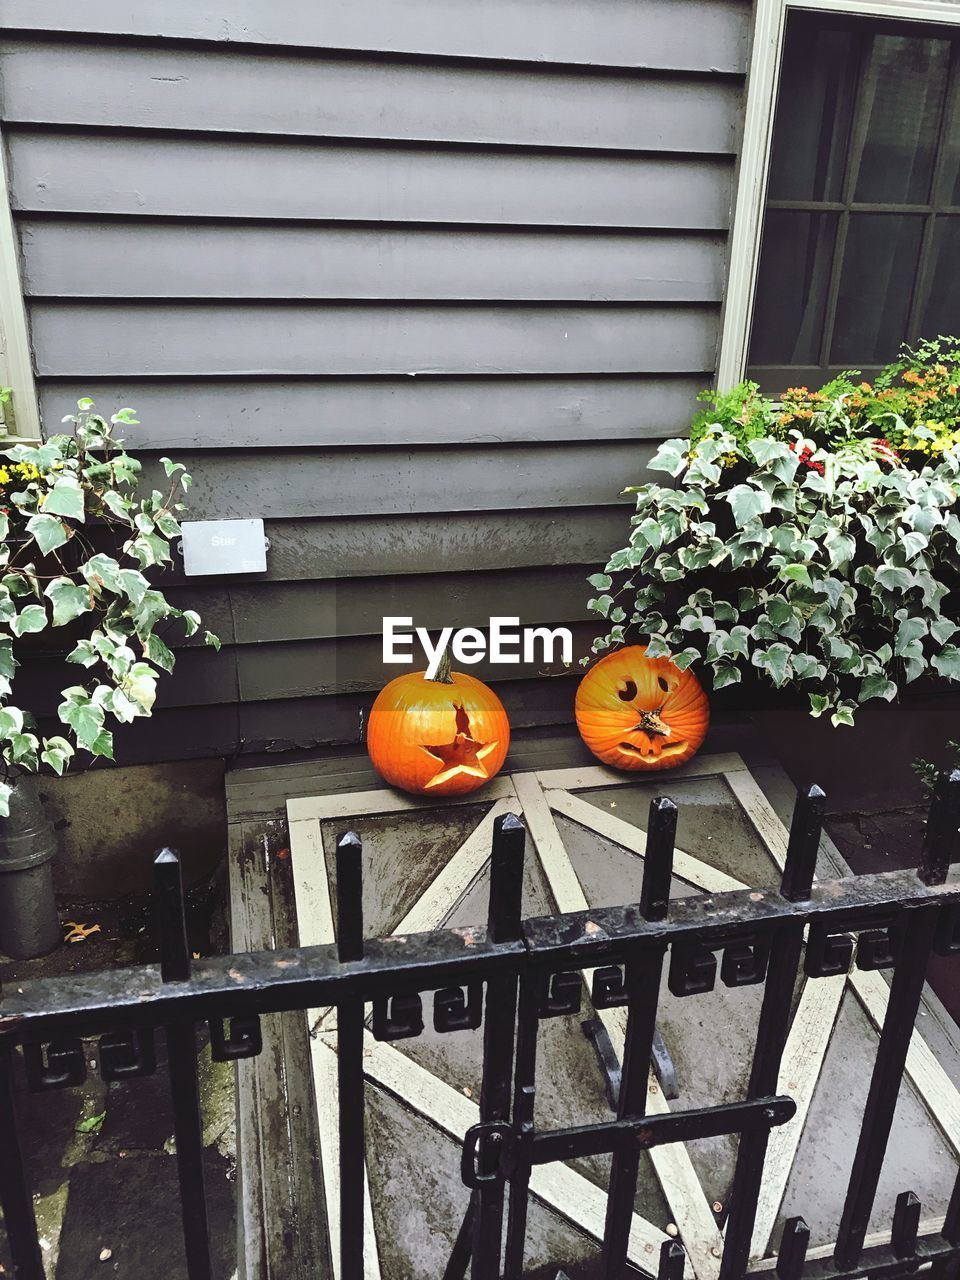 plant, no people, built structure, day, architecture, nature, building exterior, pumpkin, outdoors, growth, freshness, railing, food, flower, halloween, orange color, food and drink, flowering plant, celebration, potted plant, flower pot